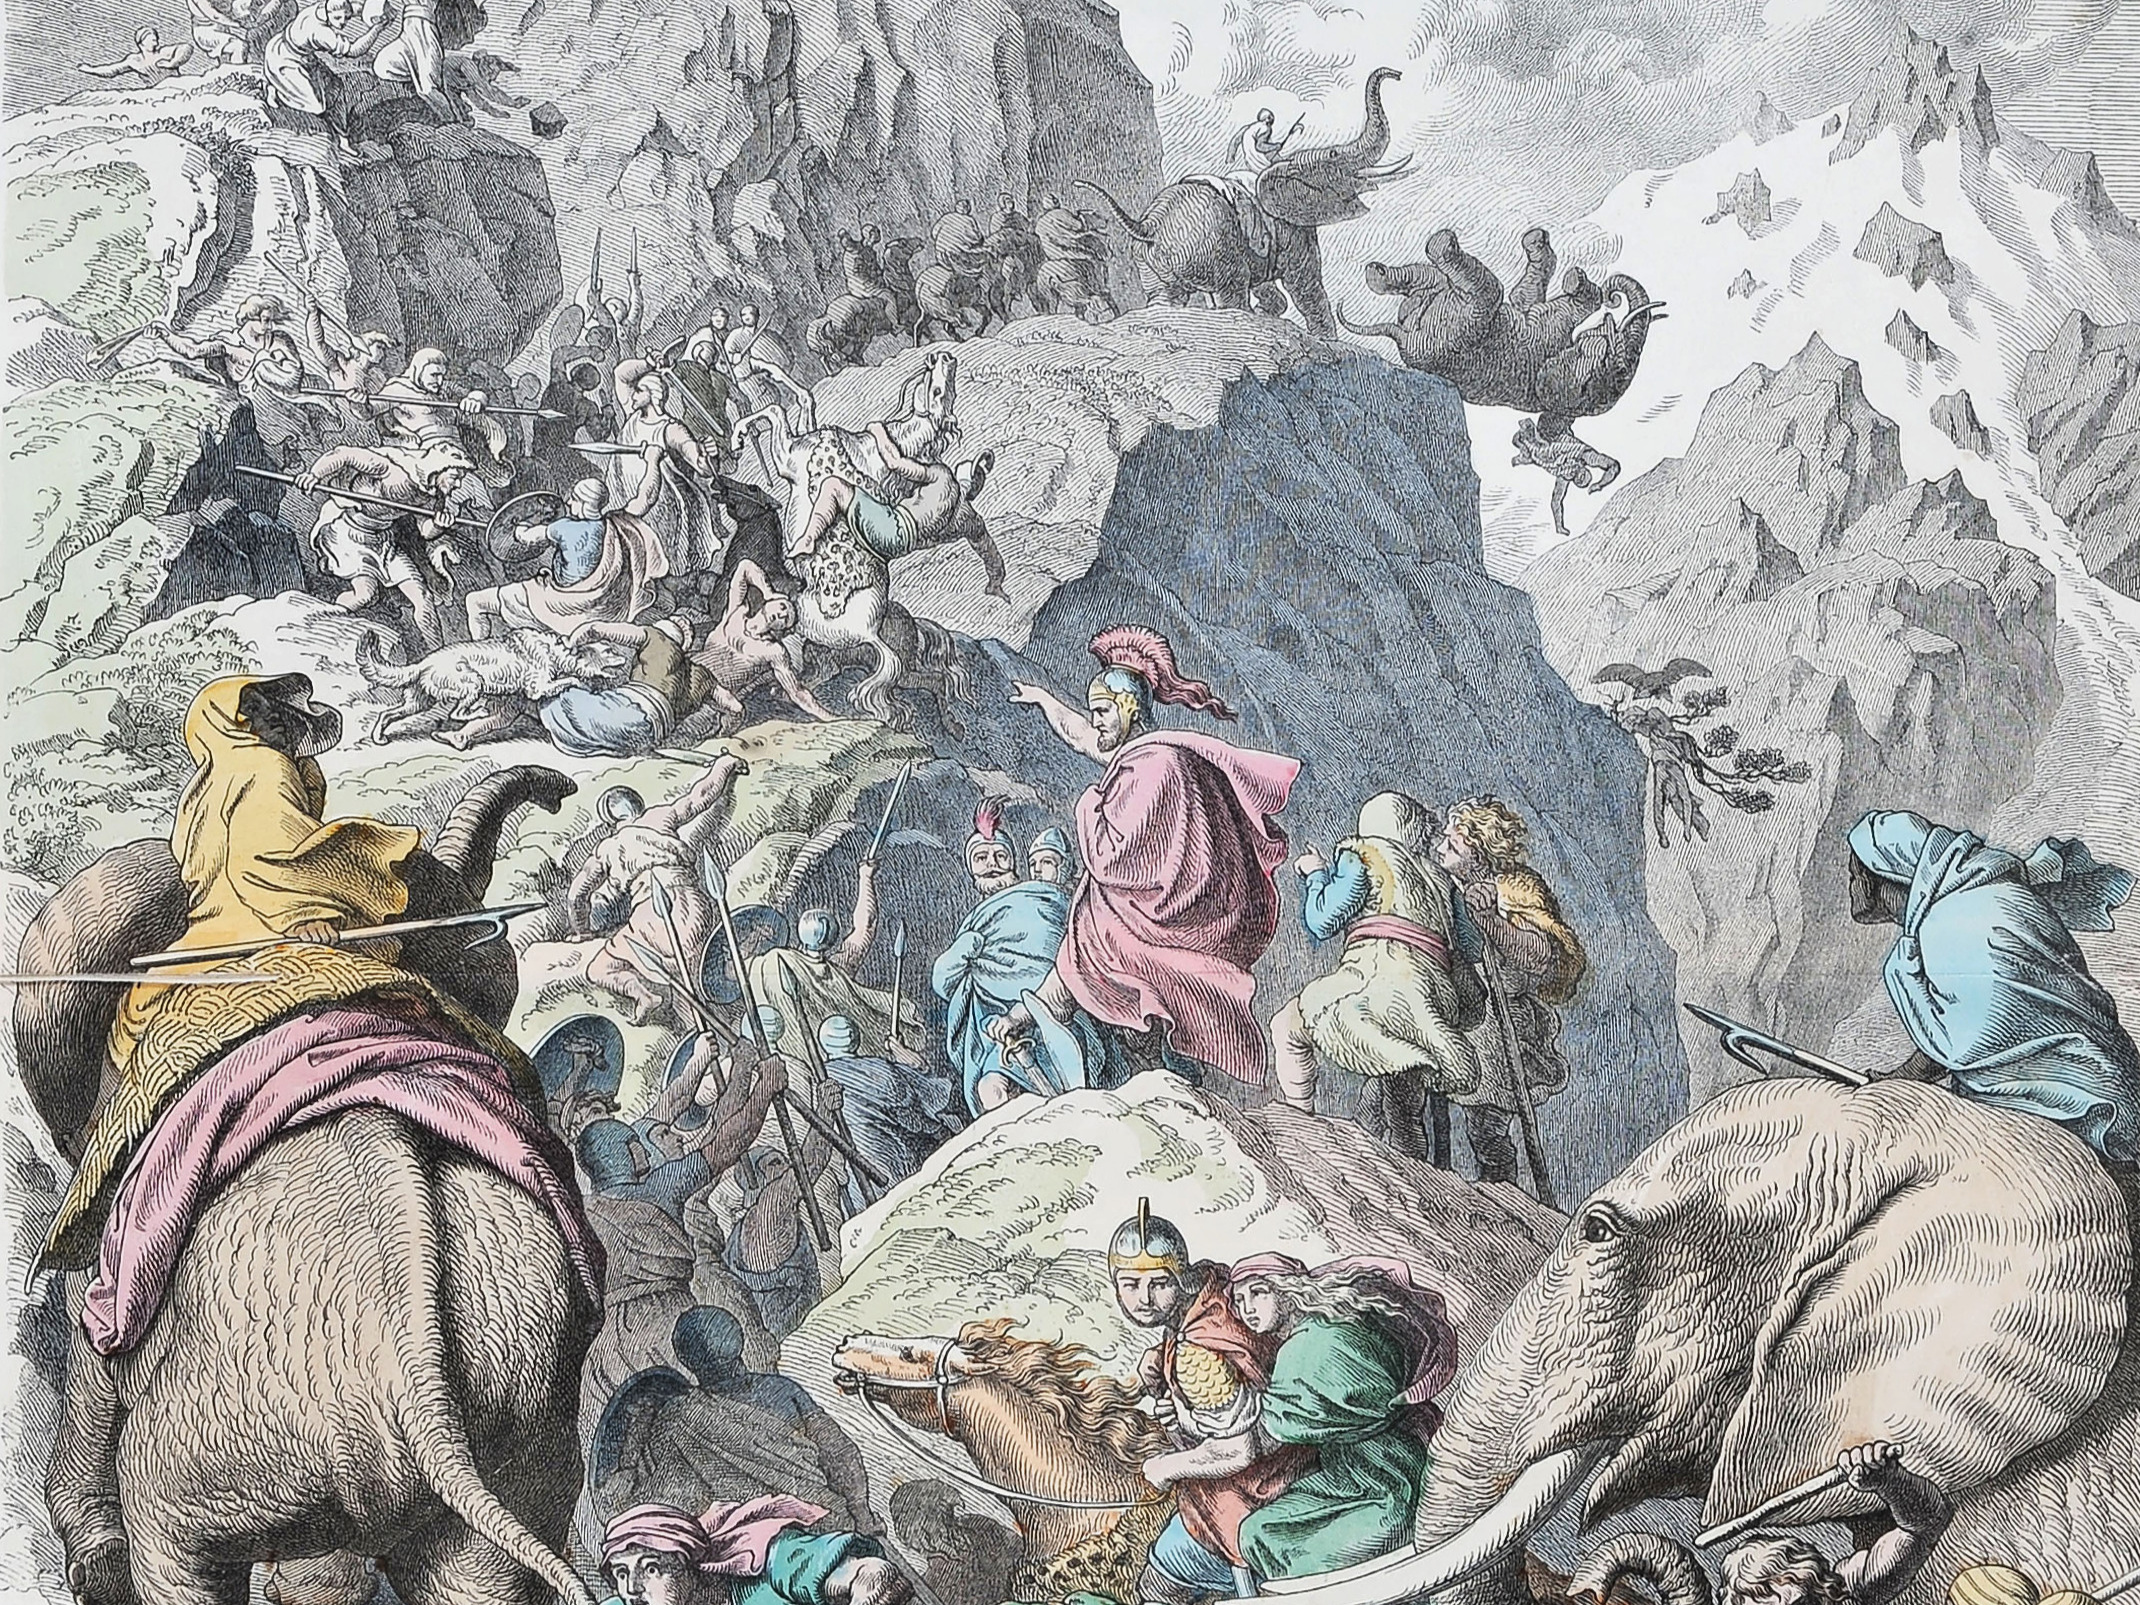 Hannibal and his men crossing thE ALPS